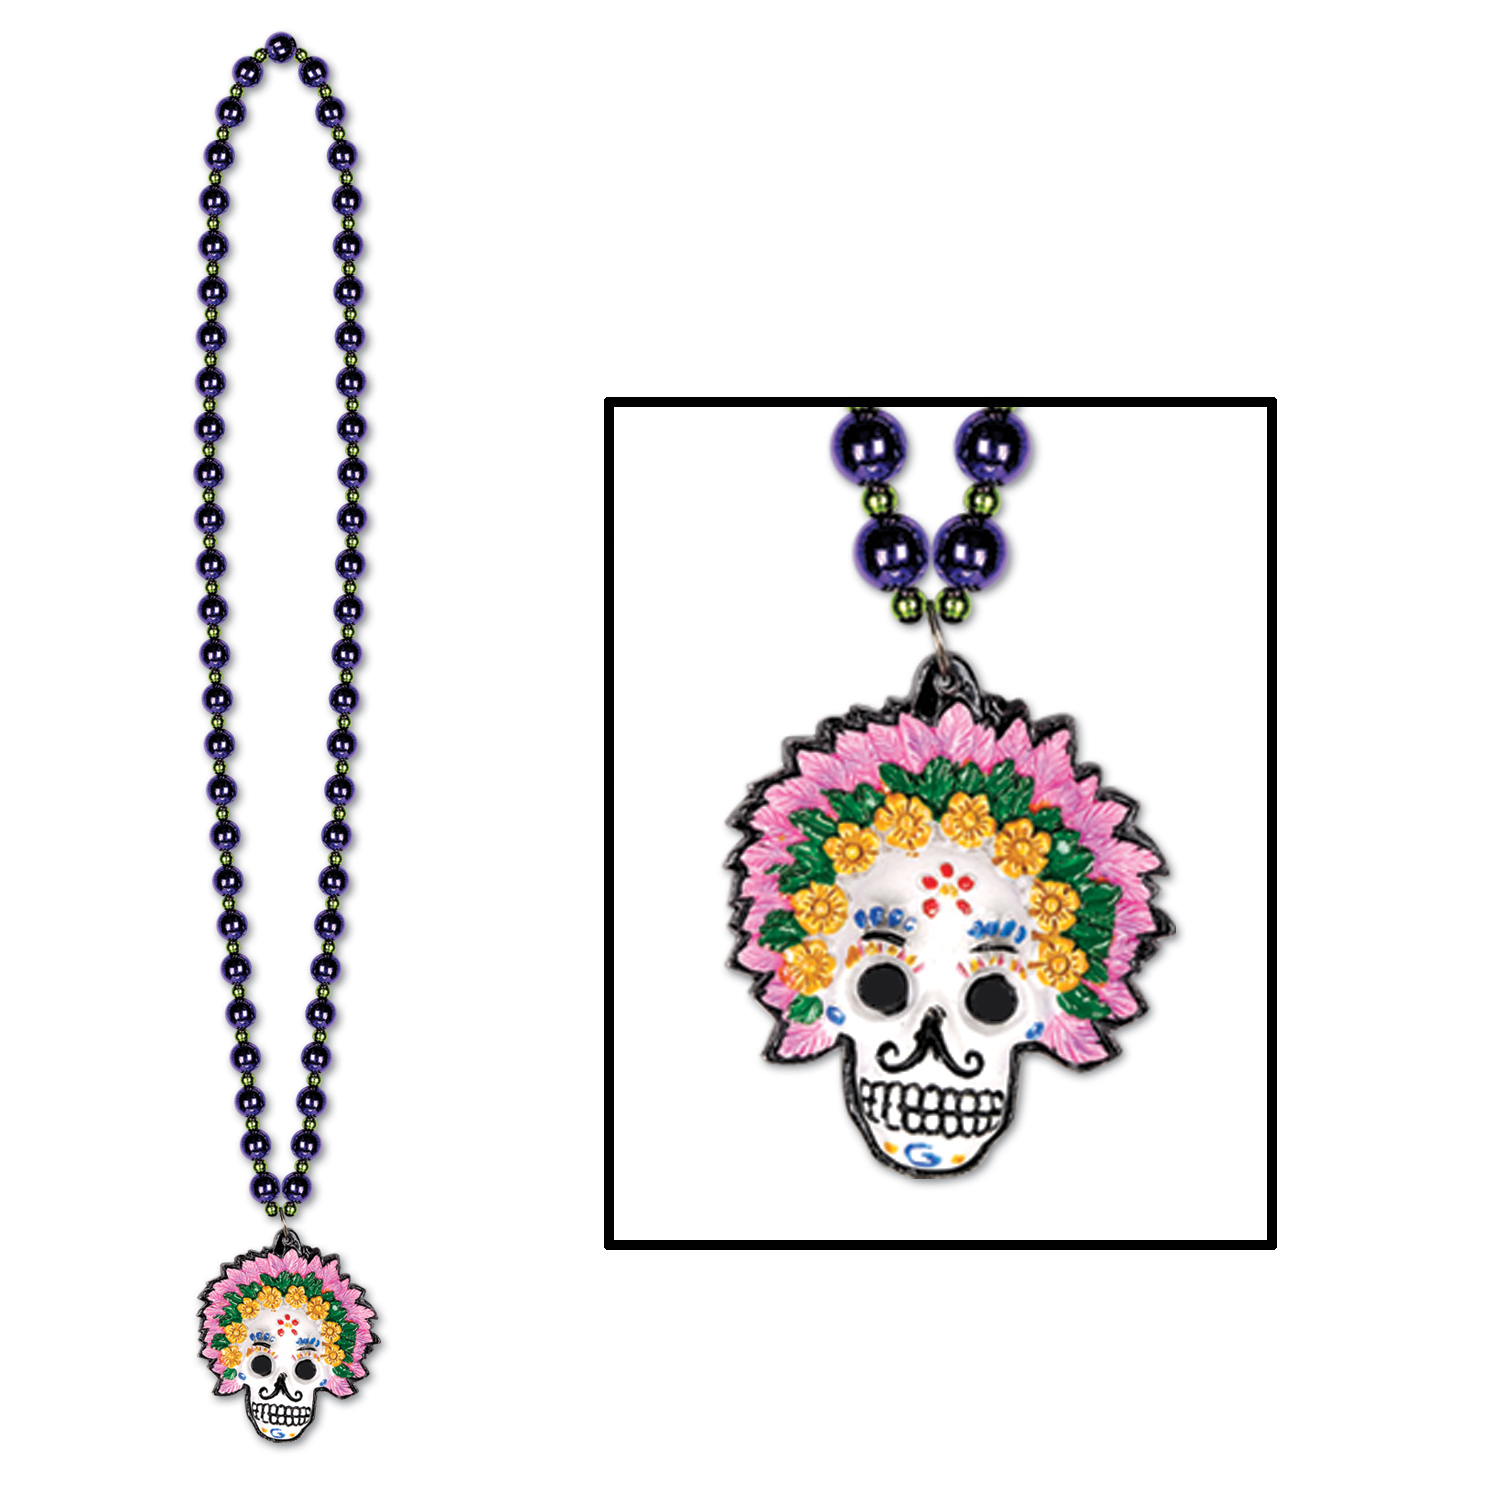 BEADS W/DAY OF THE DEAD MEDALLION (12) image